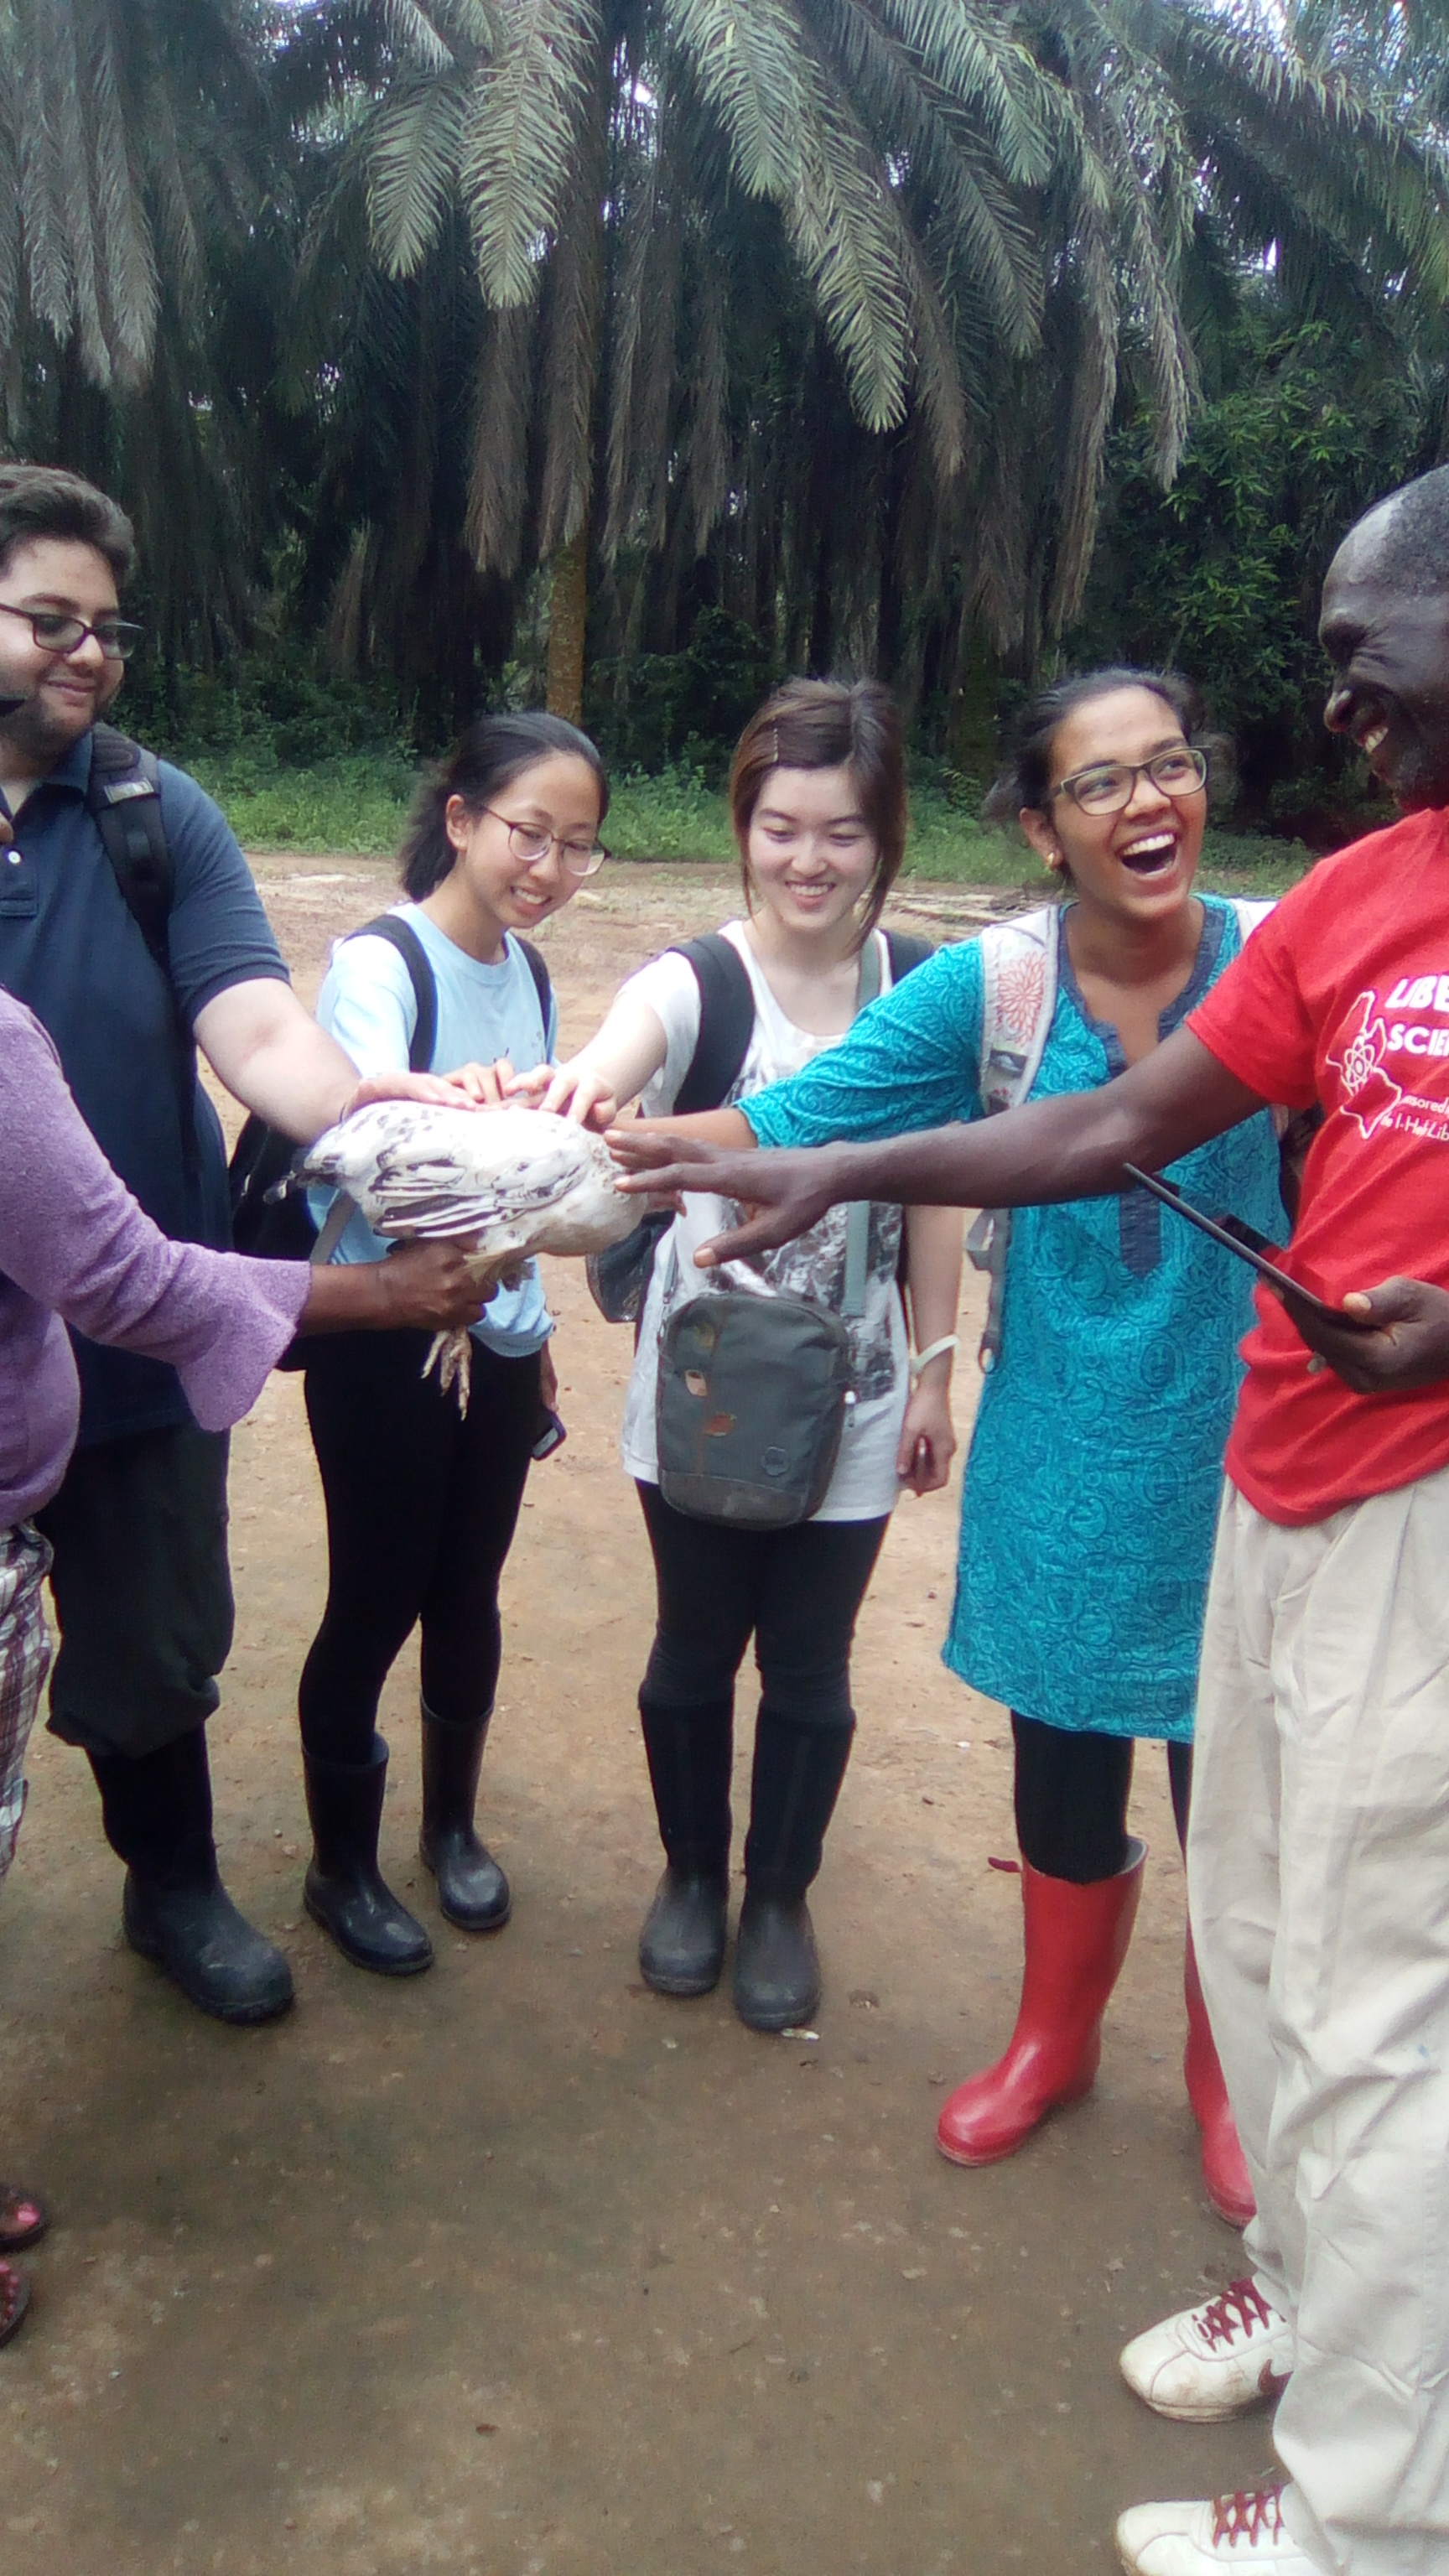 The students receiving the chicken with excitement